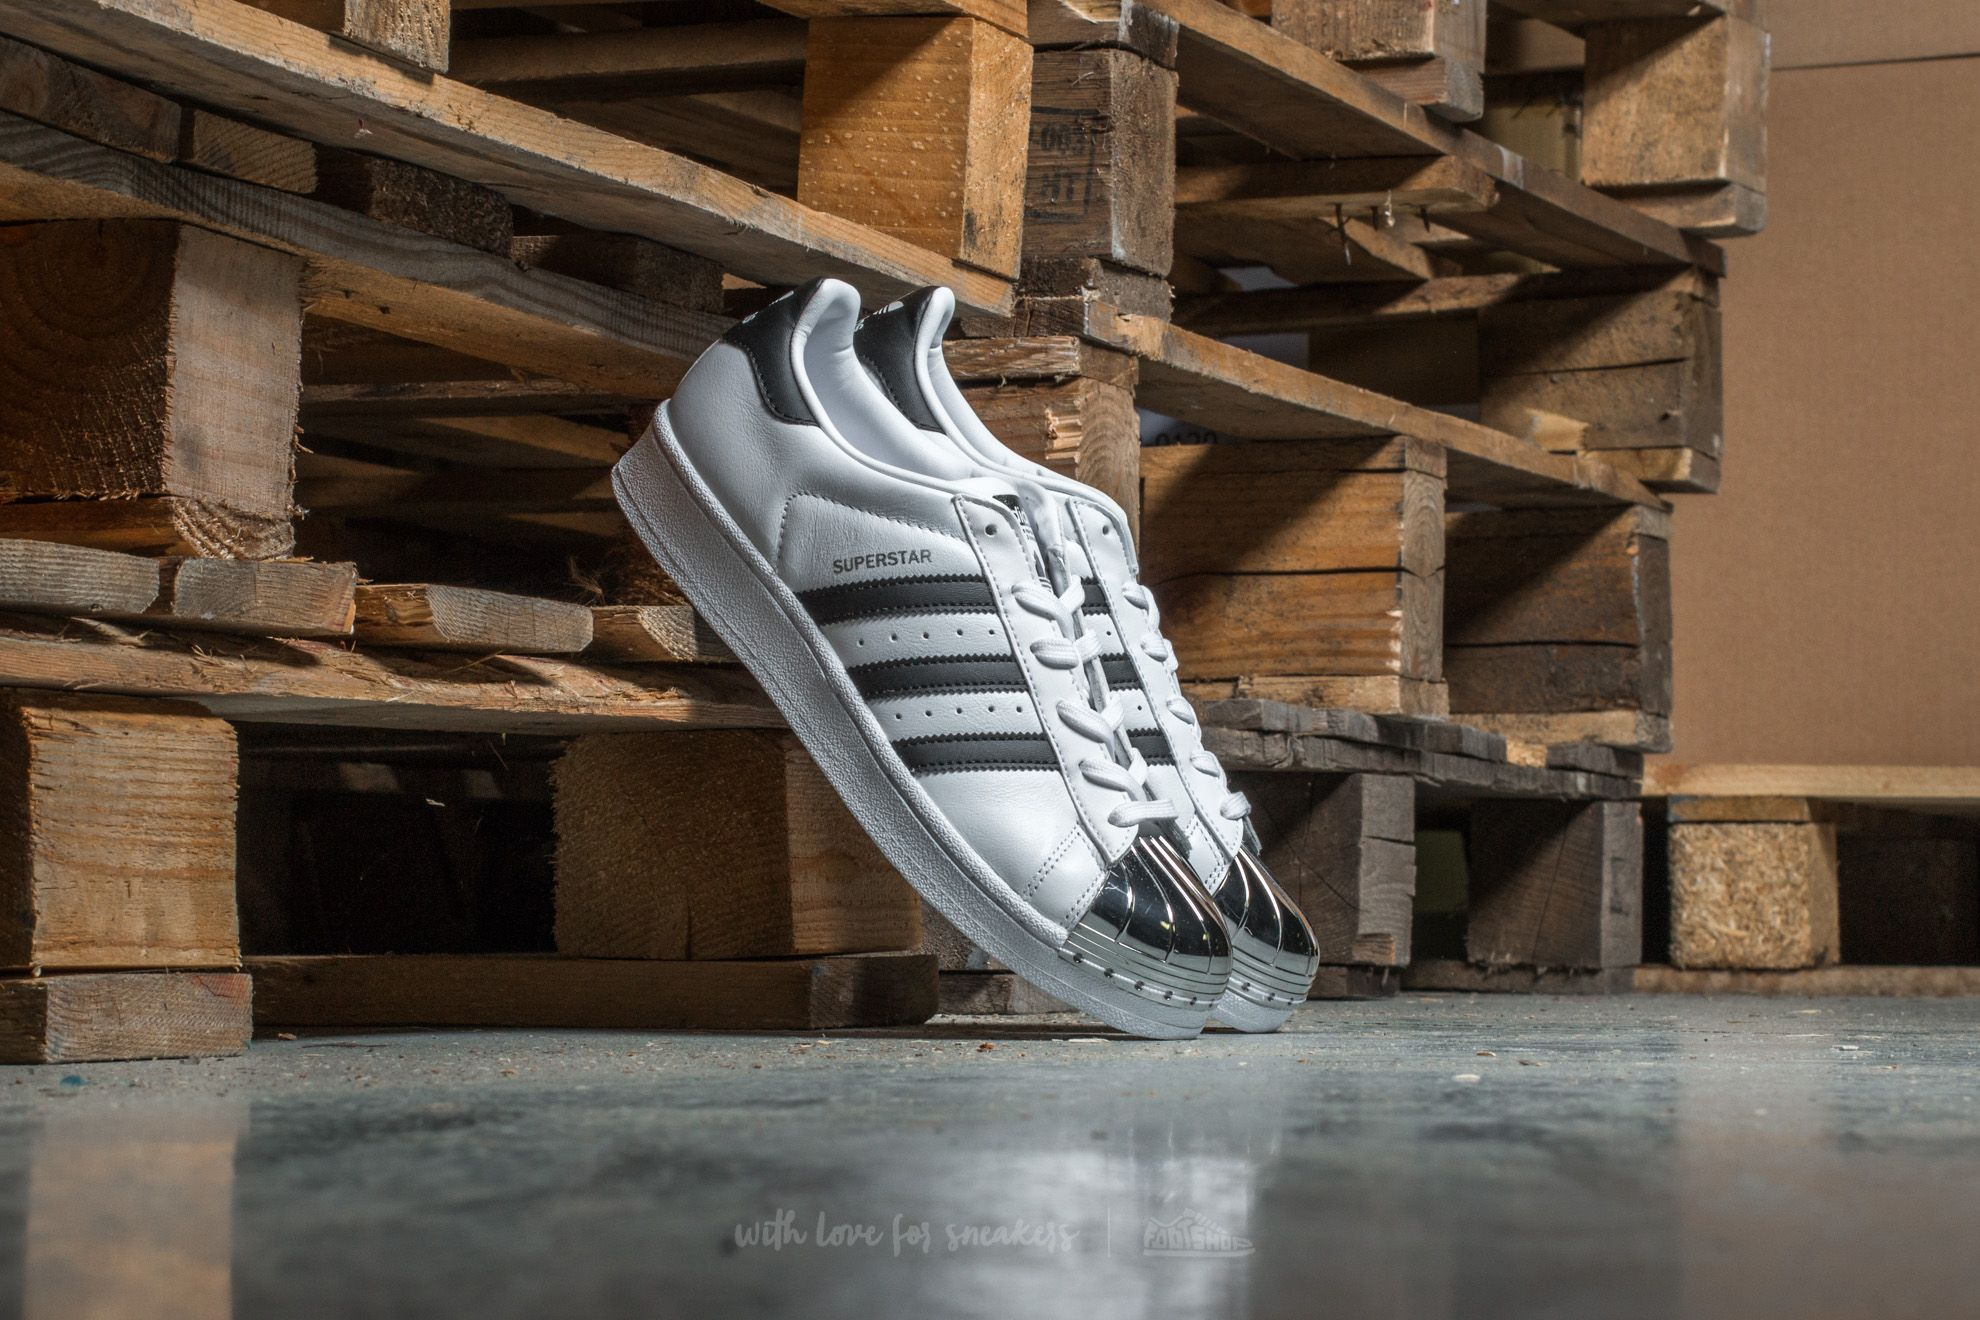 adidas Superstar Metal Toe W Ftw White/ Core Black/ Silver - 12960